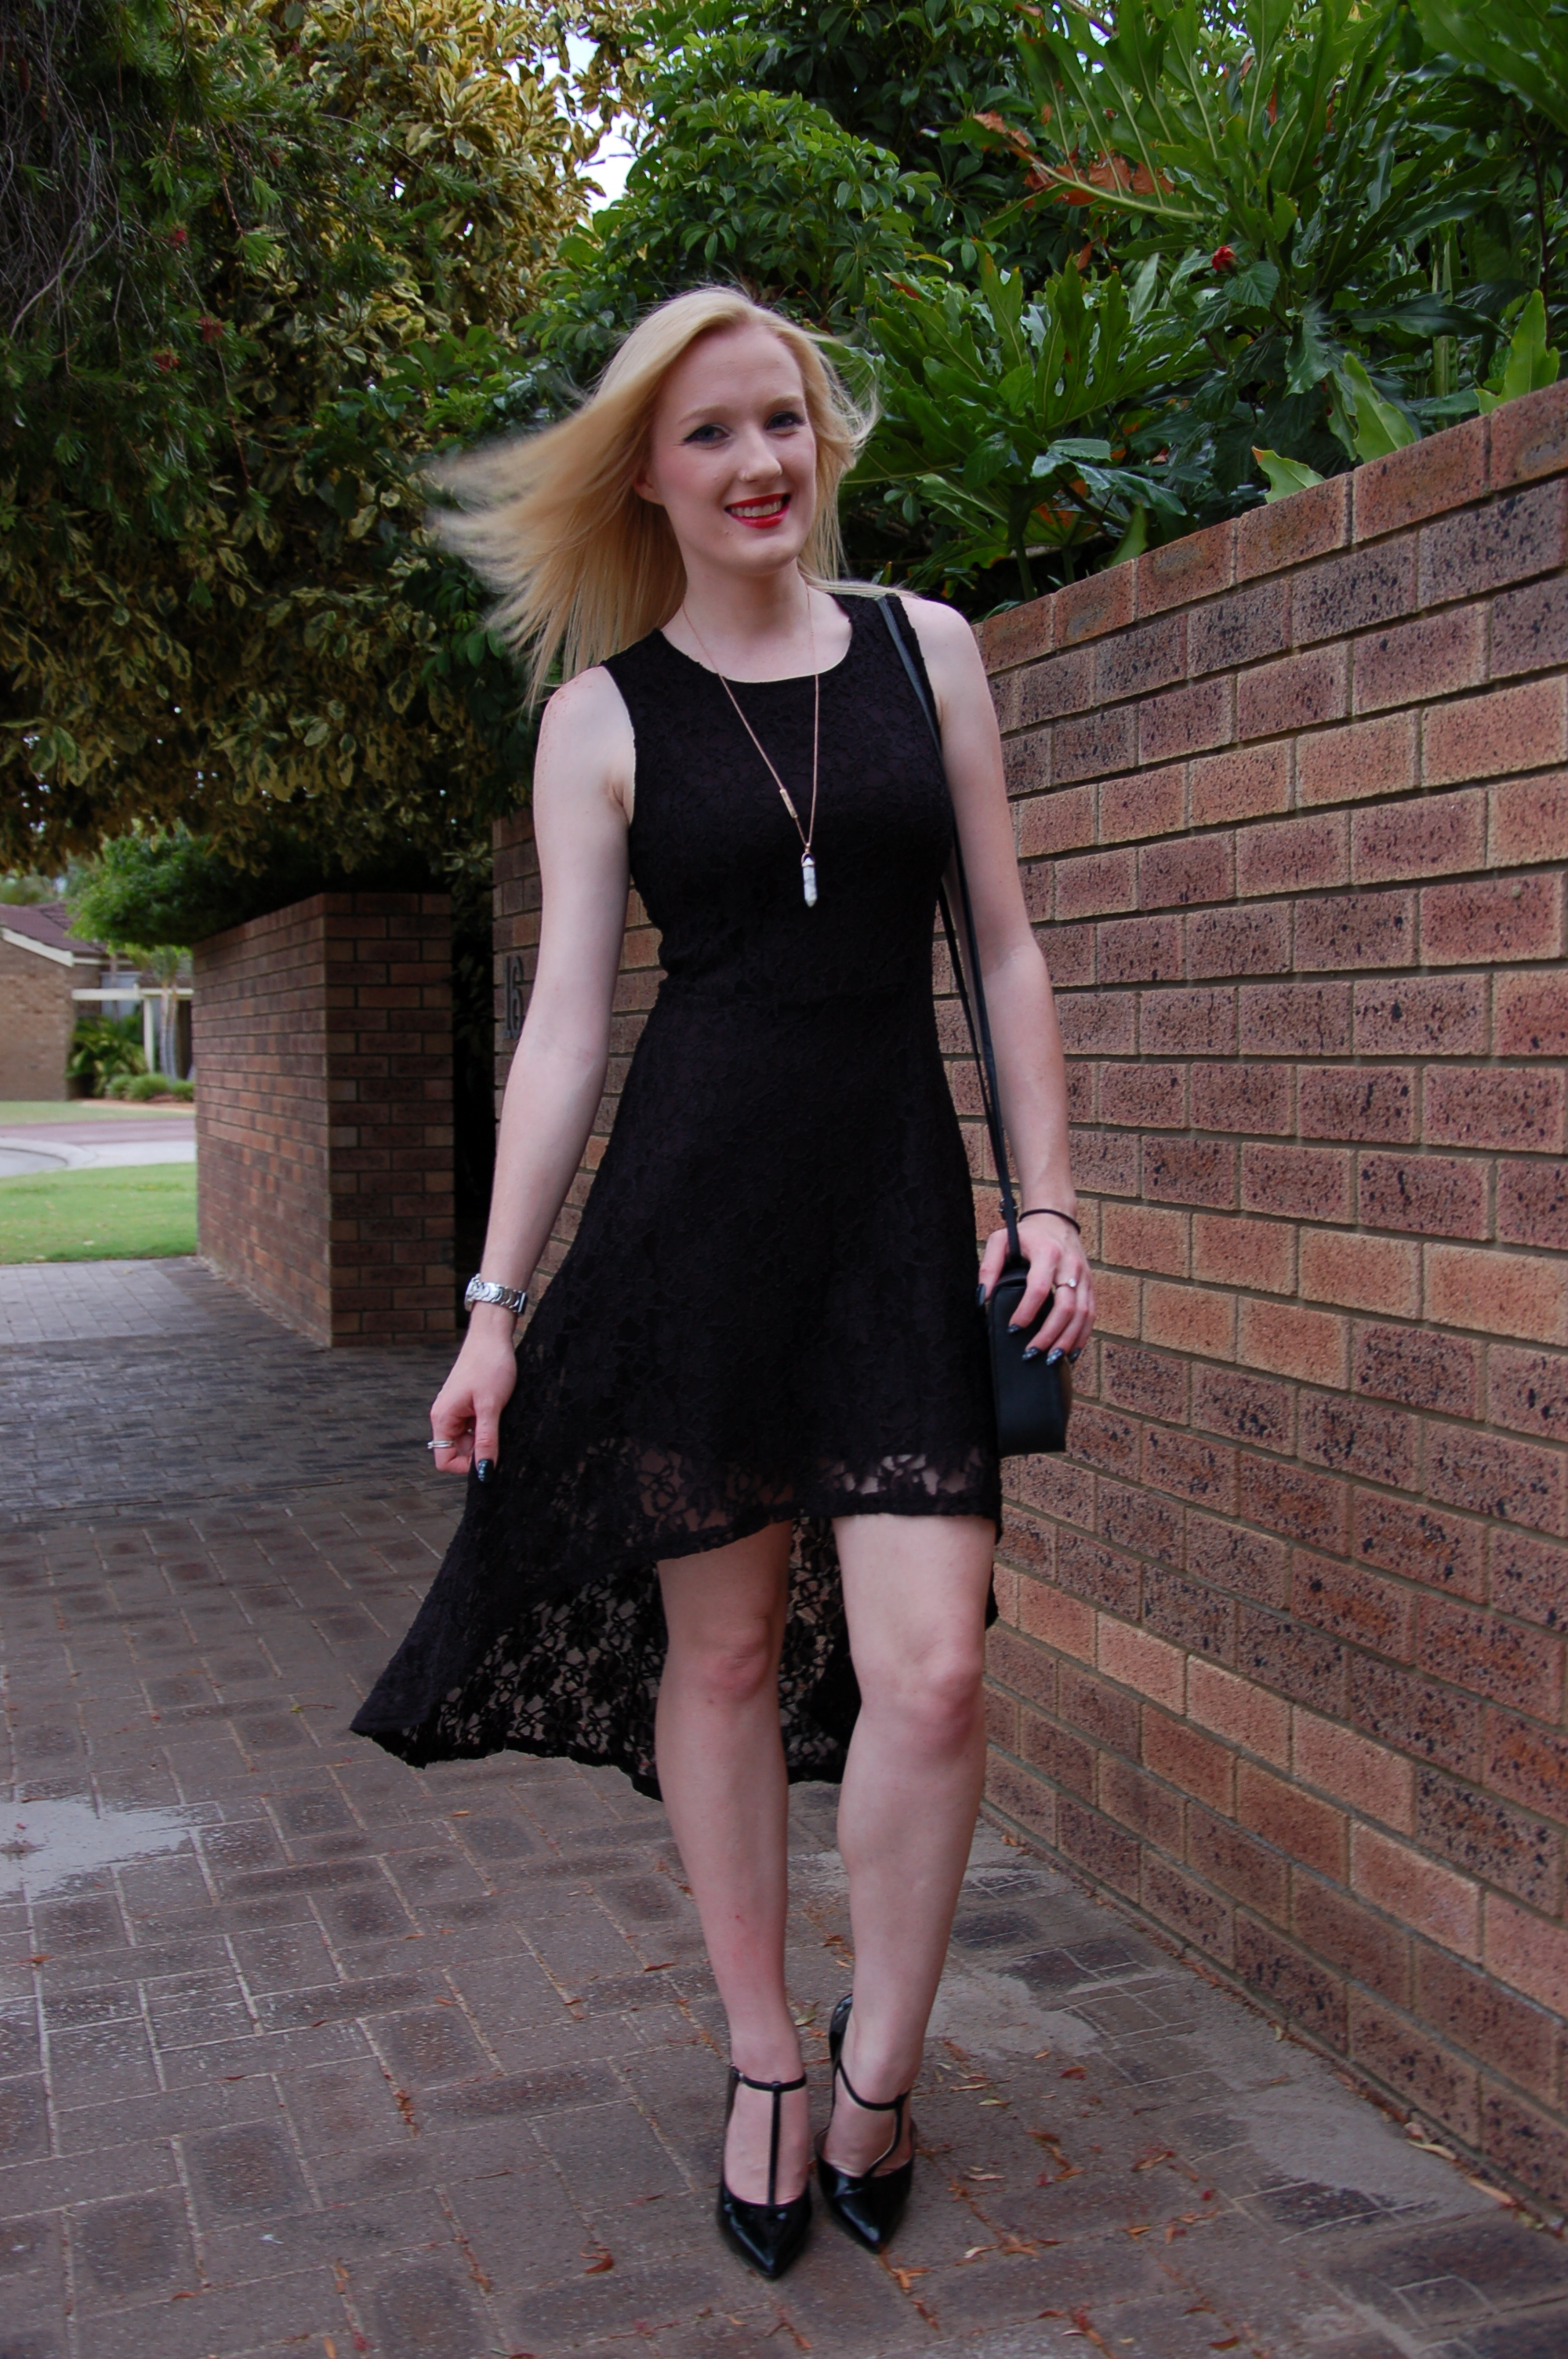 Black dress with red lipstick - Black Lace Dress And Samantha Wills Rose Gold Necklace Extraordinary Days